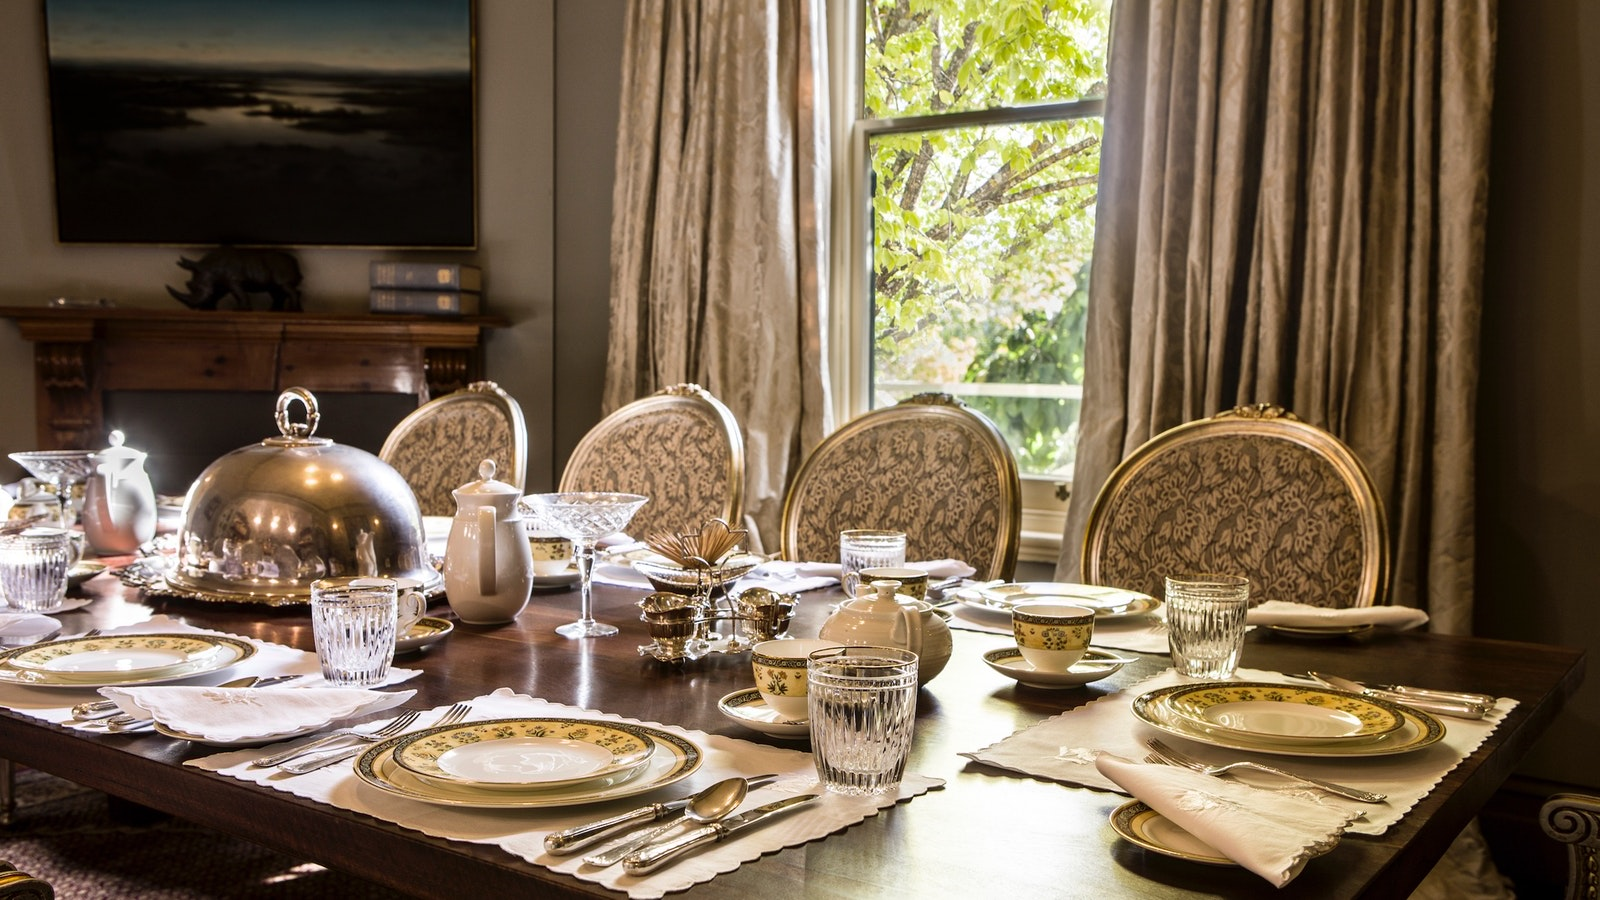 Breakfast is an event in the Holyrood dining room